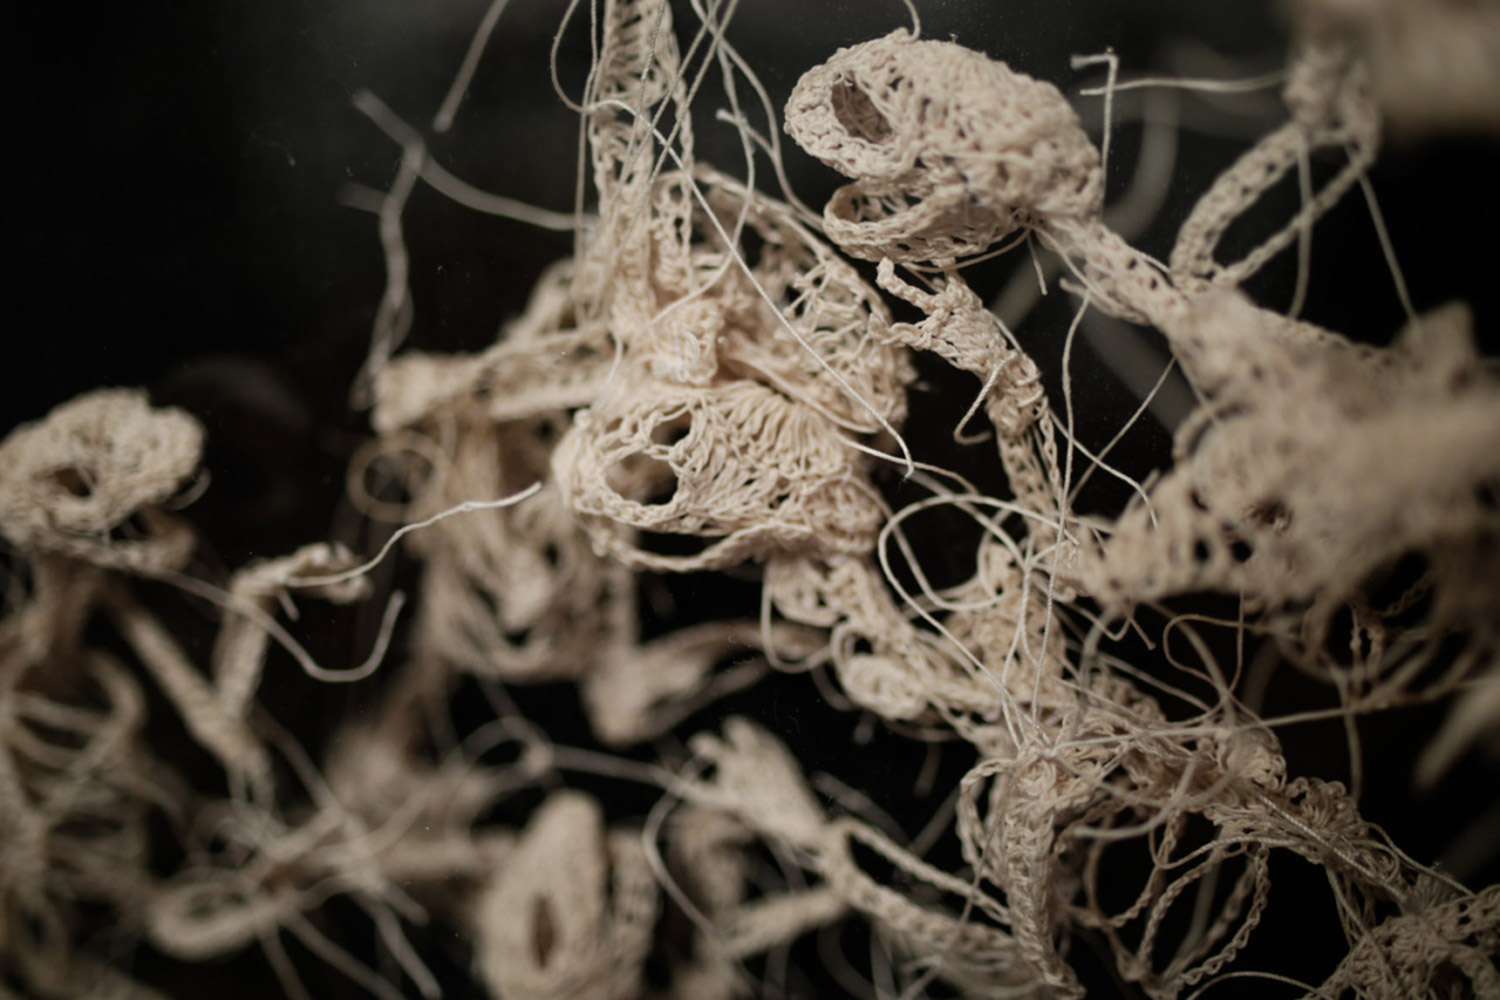 Caitlin McCormack - detail of crocheted cluster of animal skeletons